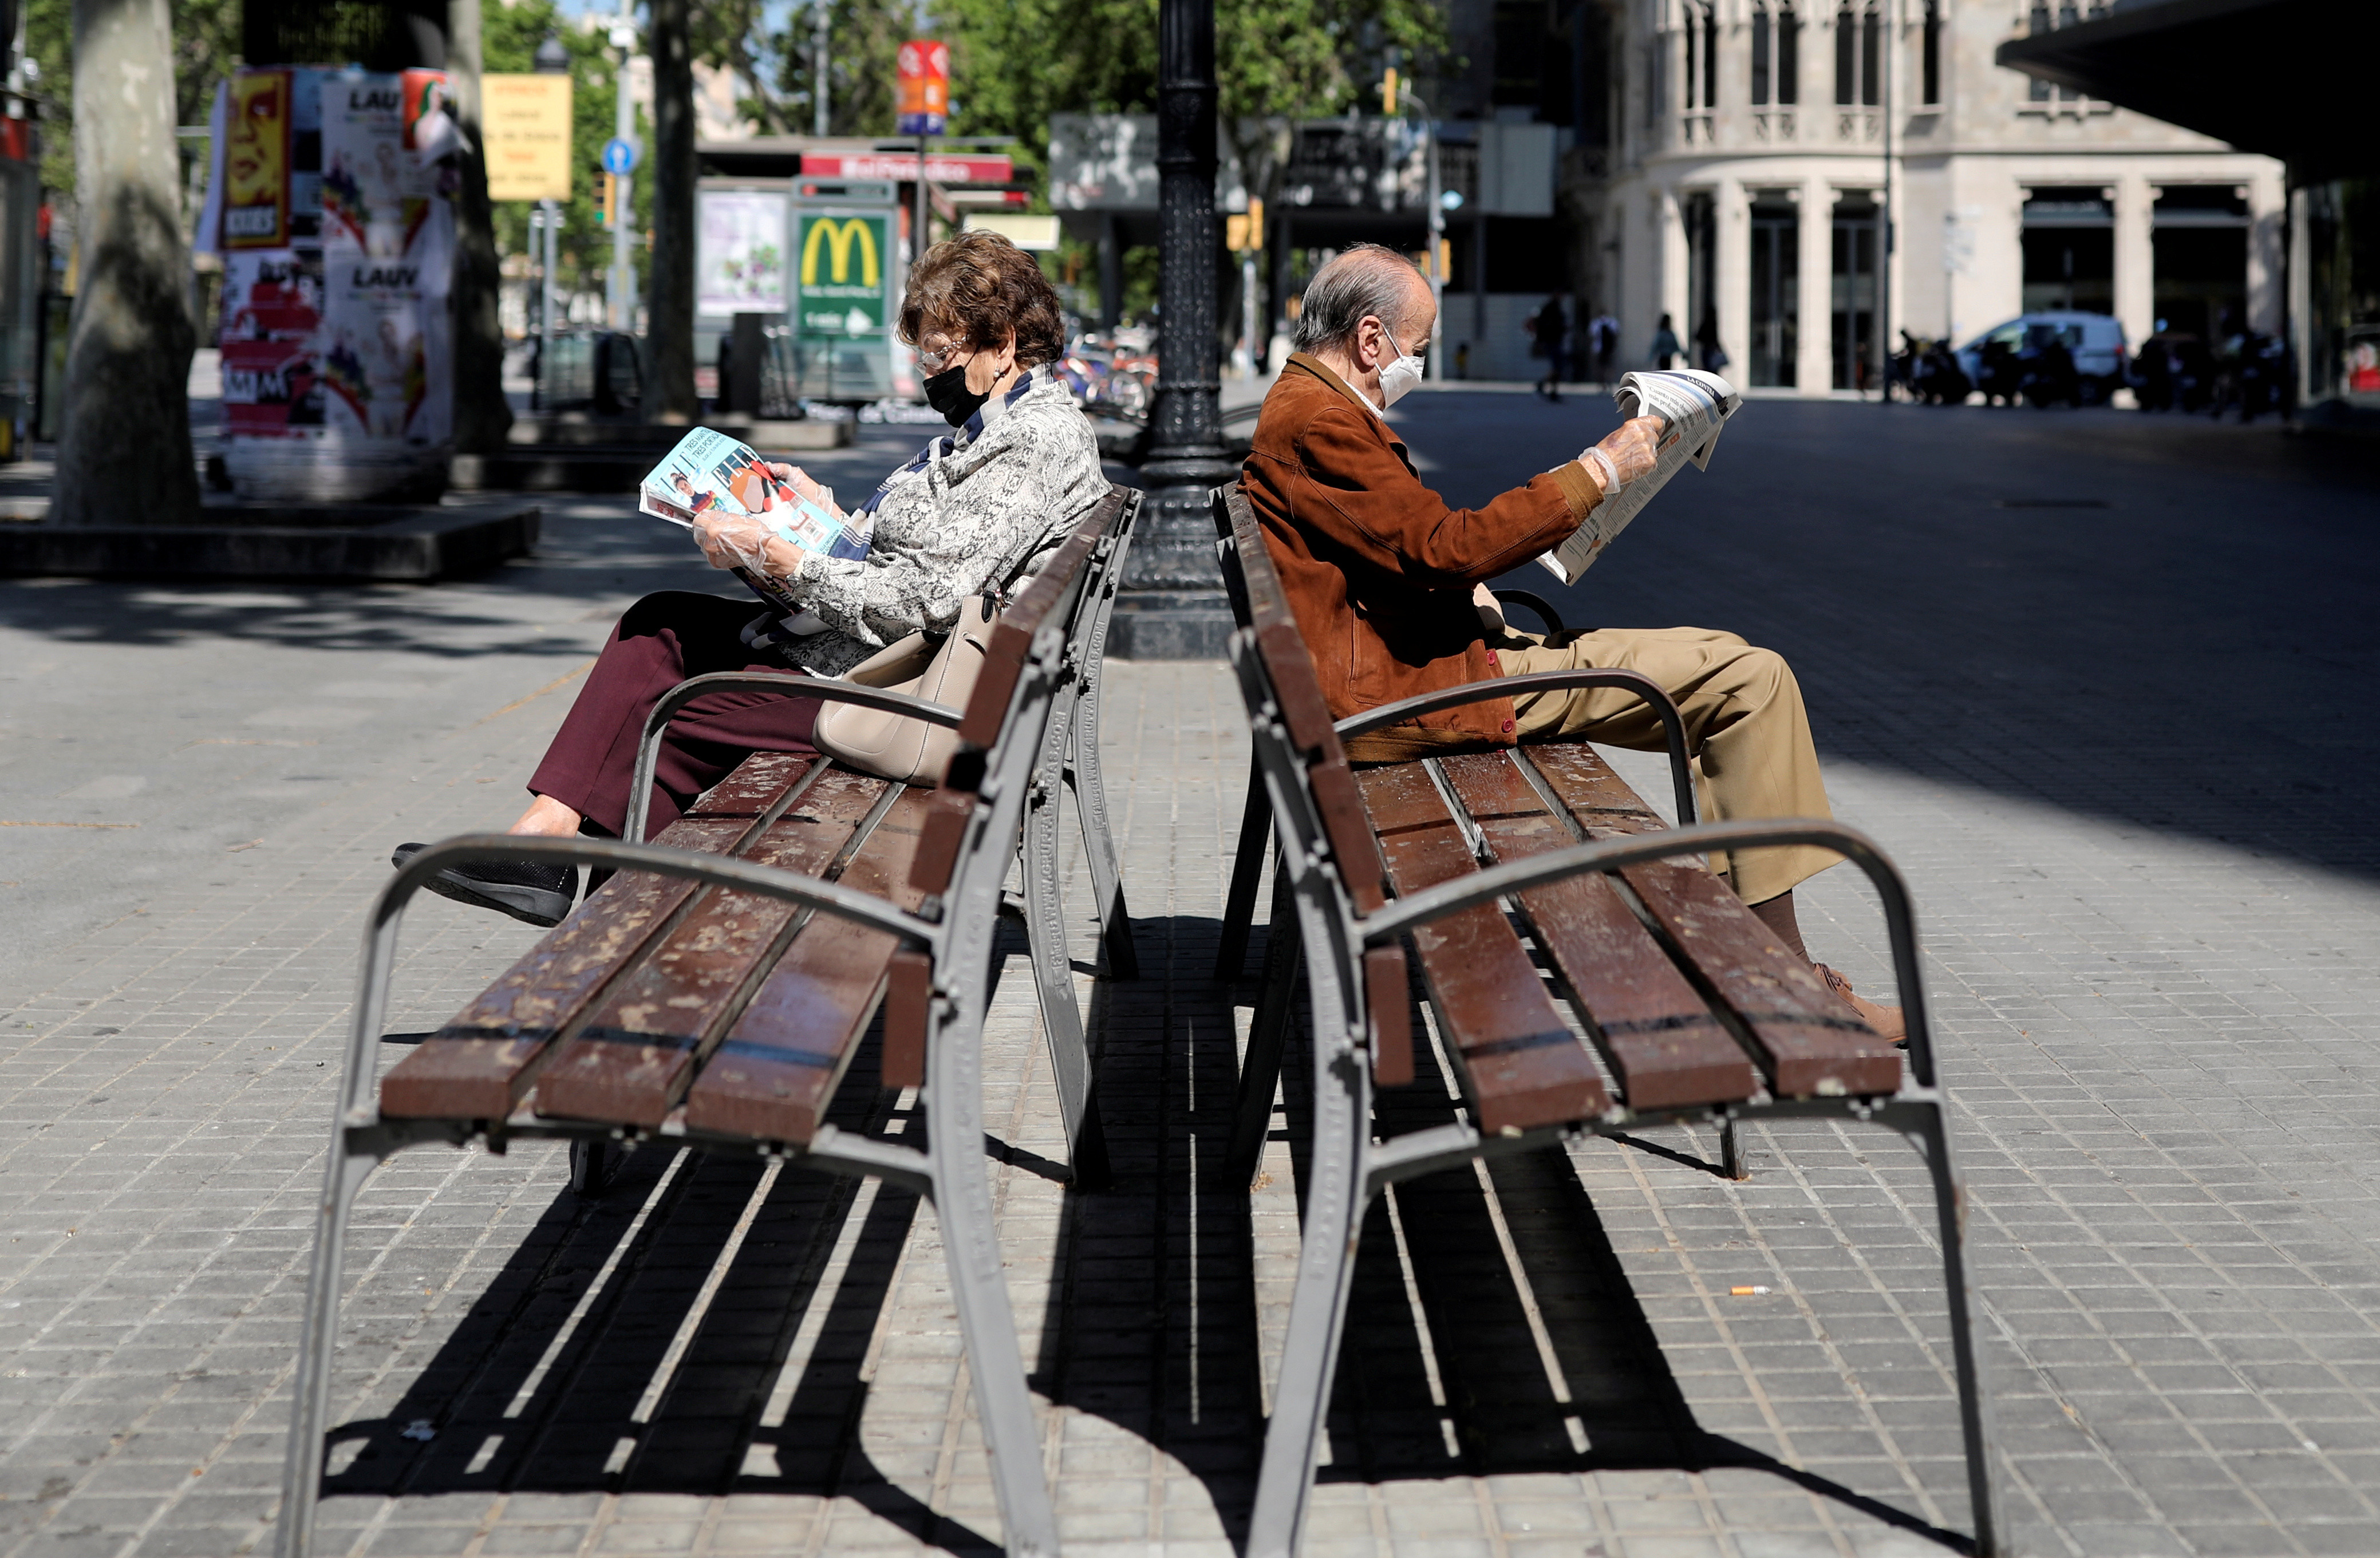 Elderly people wearing protective masks read newspapers as they sit on benches, during the hours in which the elderly are allowed to be outdoors, amid the coronavirus disease (COVID-19) outbreak, in Barcelona, Spain, May 4, 2020. REUTERS/Nacho Doce     TPX IMAGES OF THE DAY - RC2OHG94T3AH